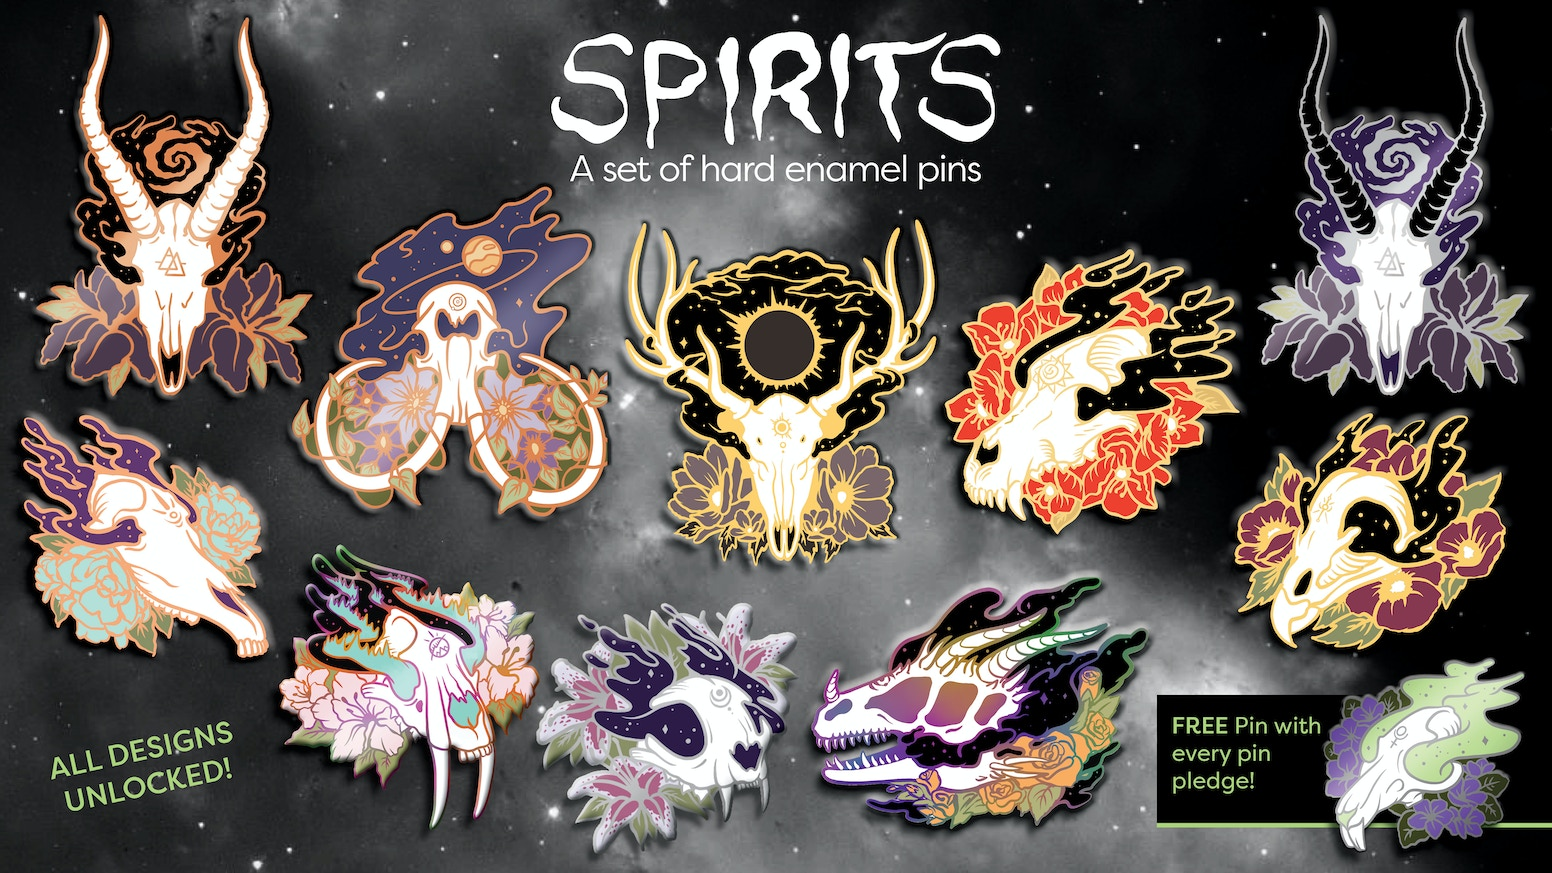 A spooky and celestial set of enamel pins featuring animal skulls, inspired by the spirits of the cosmos. Miss out on the kickstarter campaign? You can preorder via the link below!